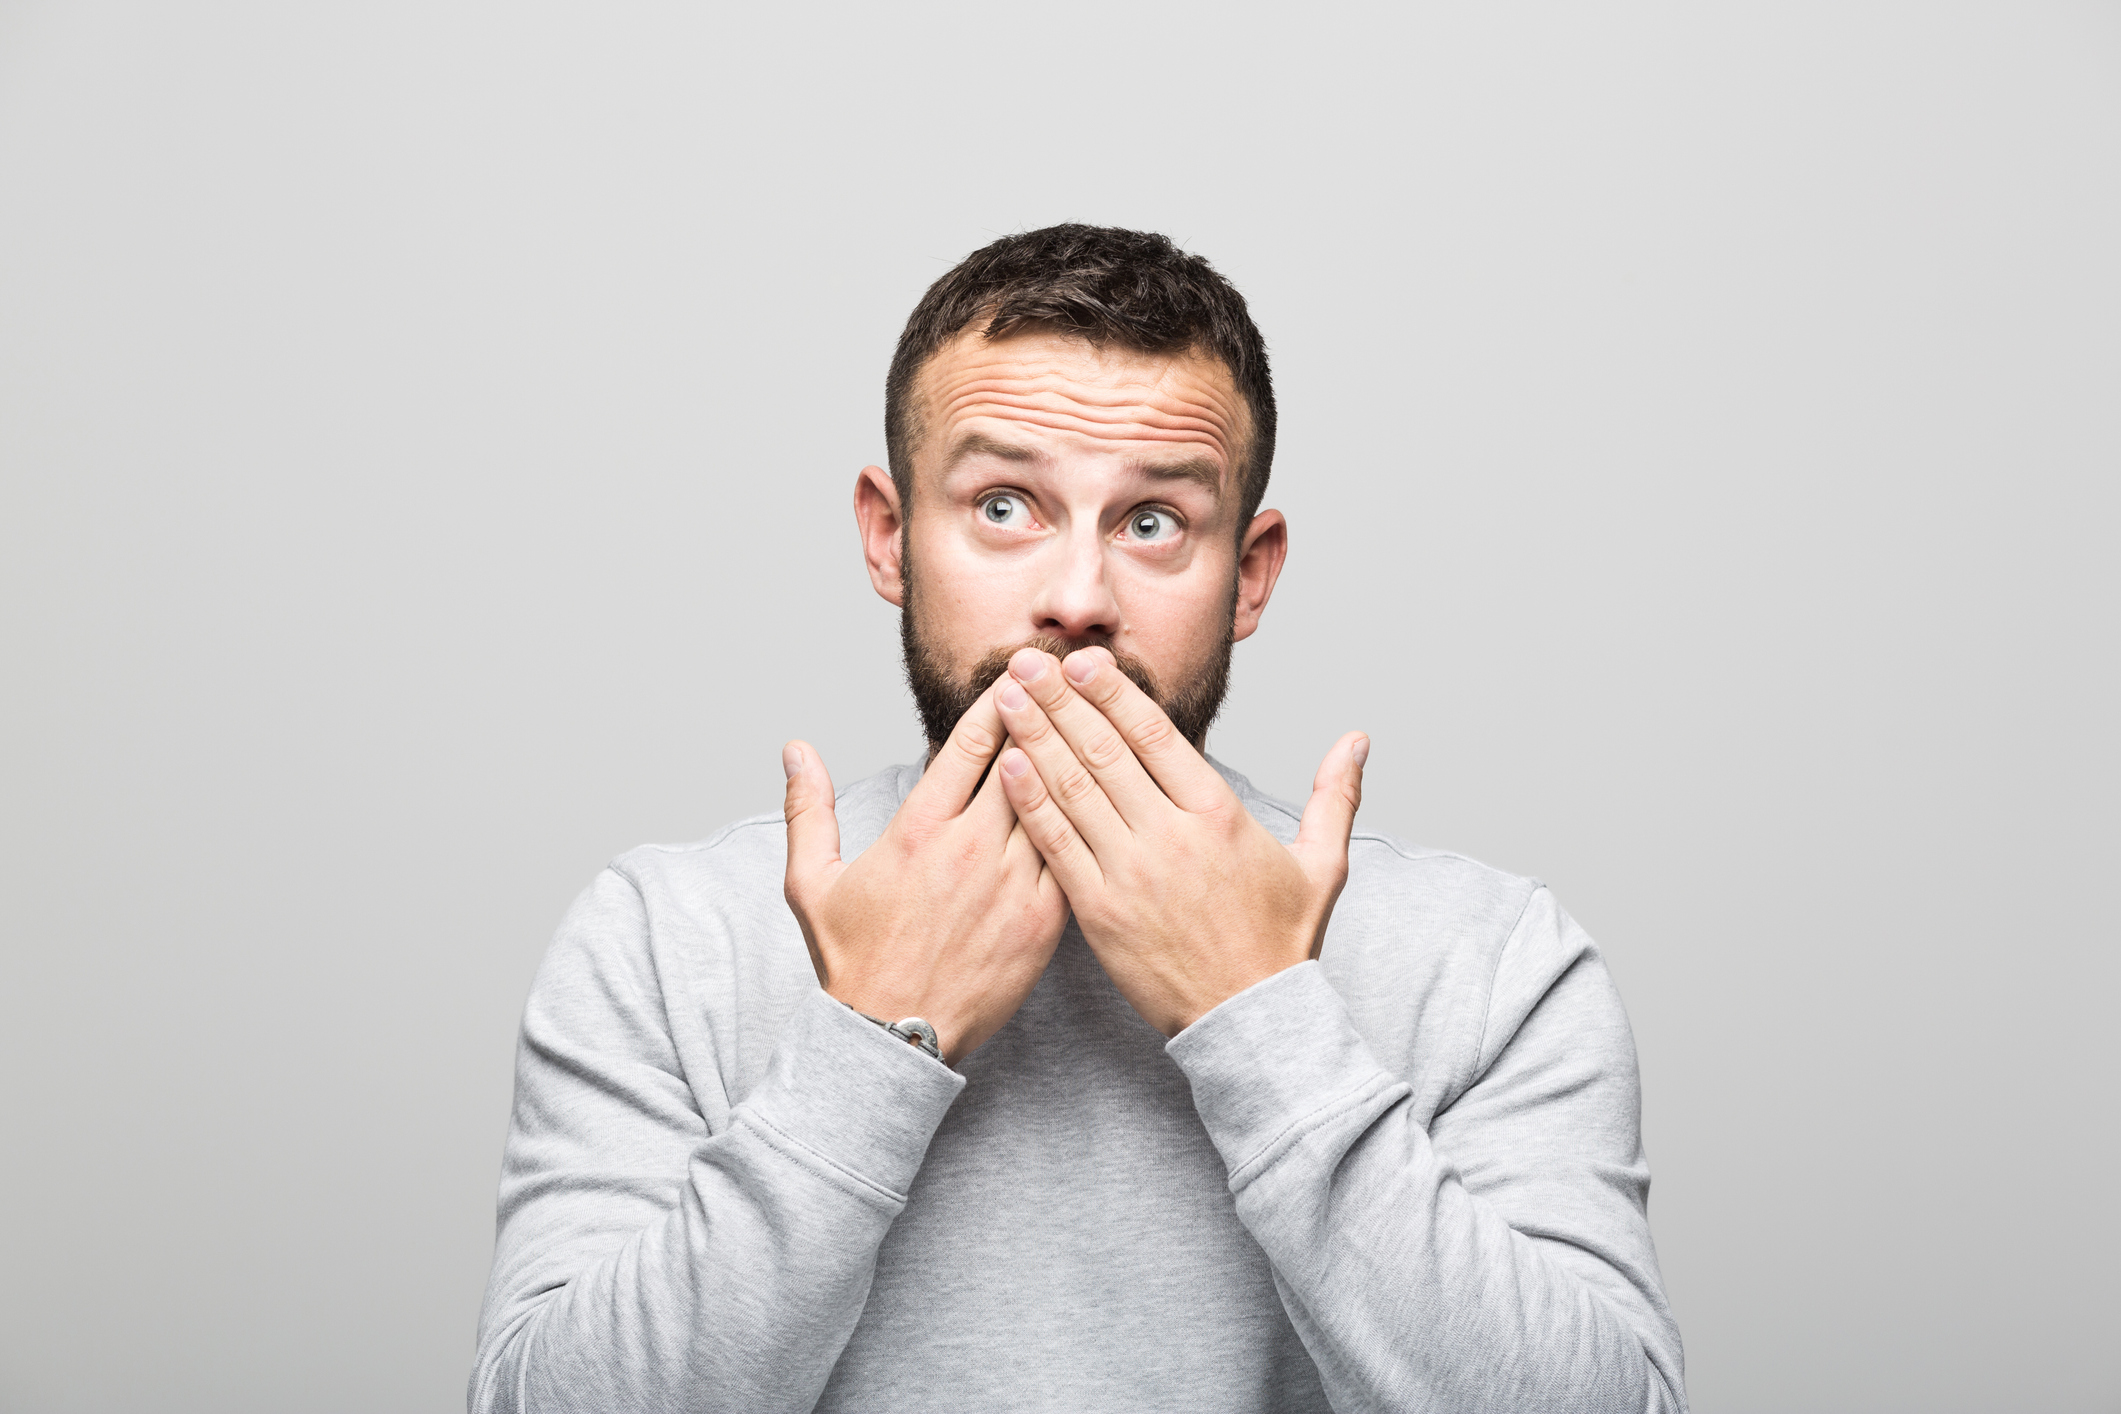 Portrait of shocked bearded young man looking up, grey background